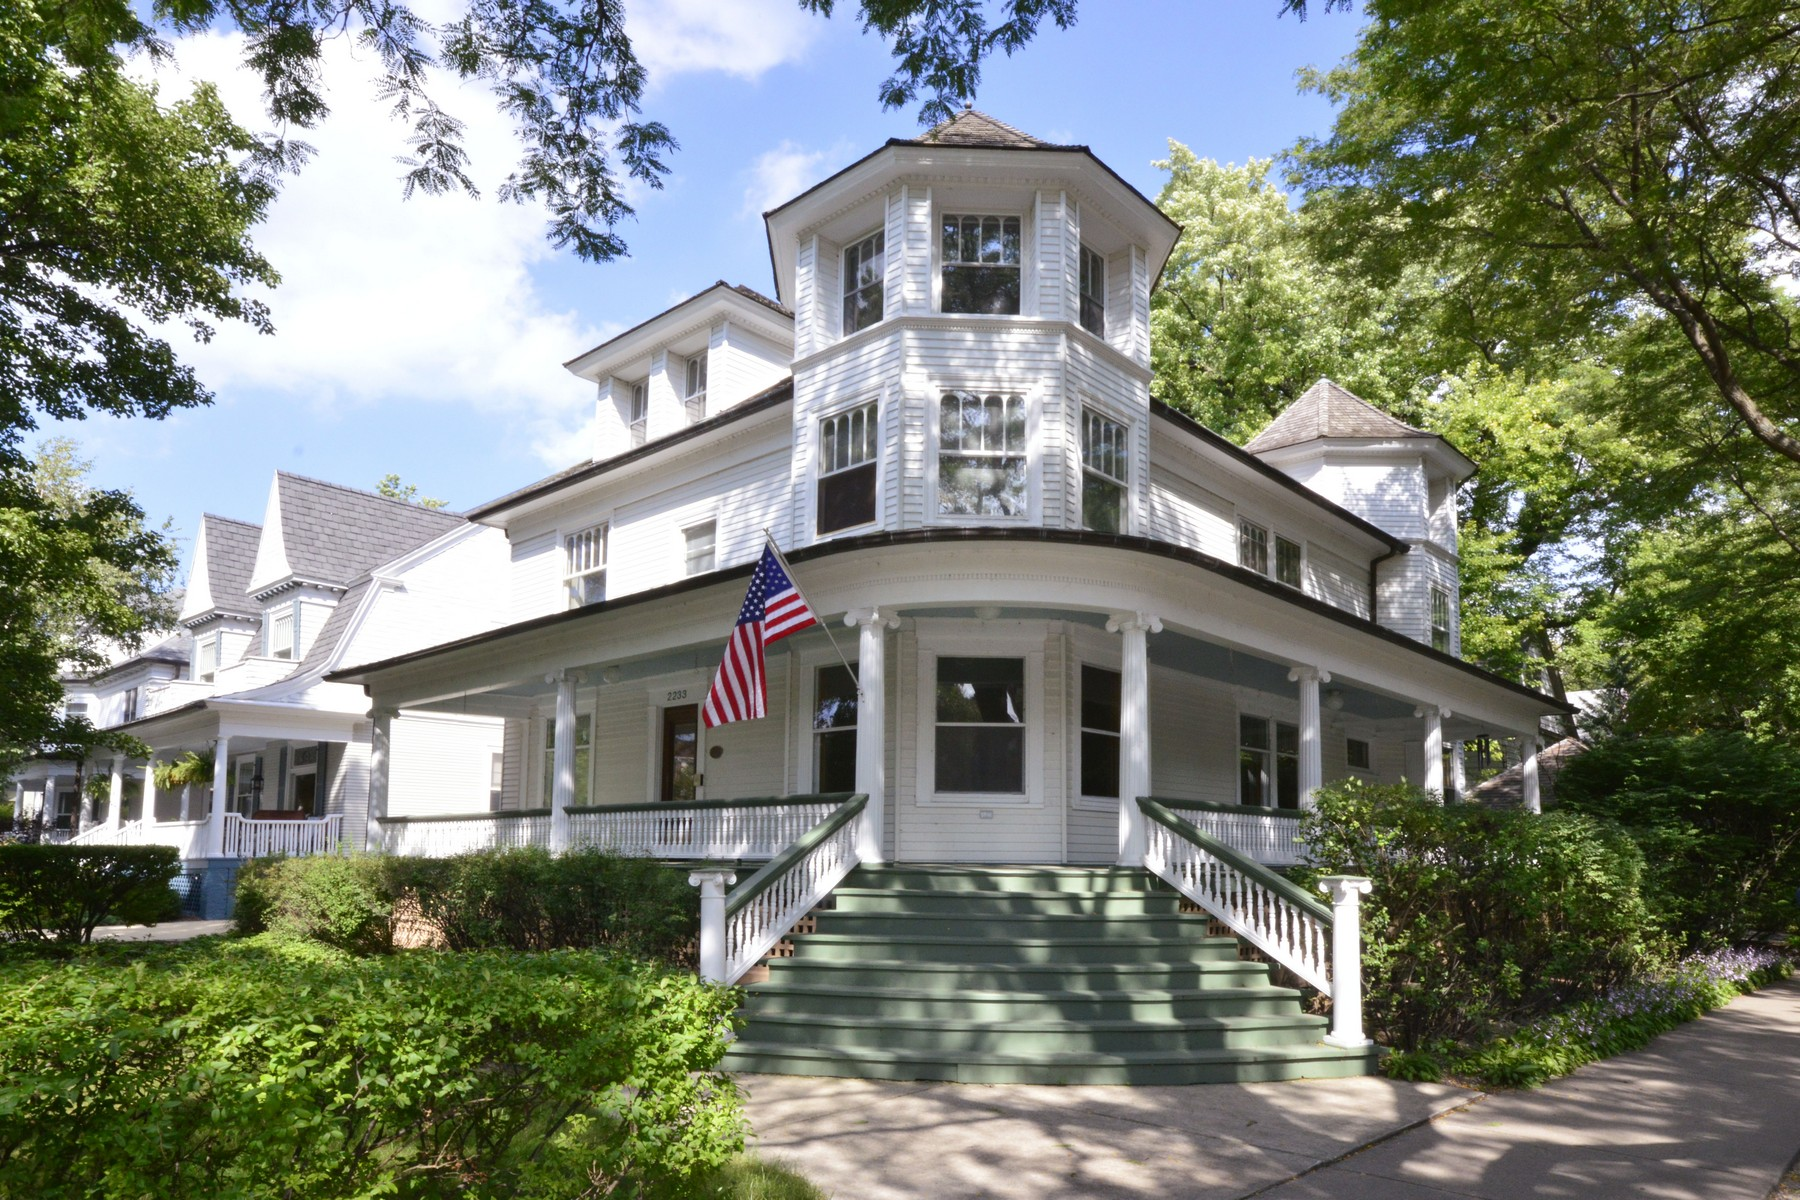 Maison unifamiliale pour l Vente à Magnificent Location And Presence 2233 Sherman Avenue Evanston, Illinois, 60201 États-Unis